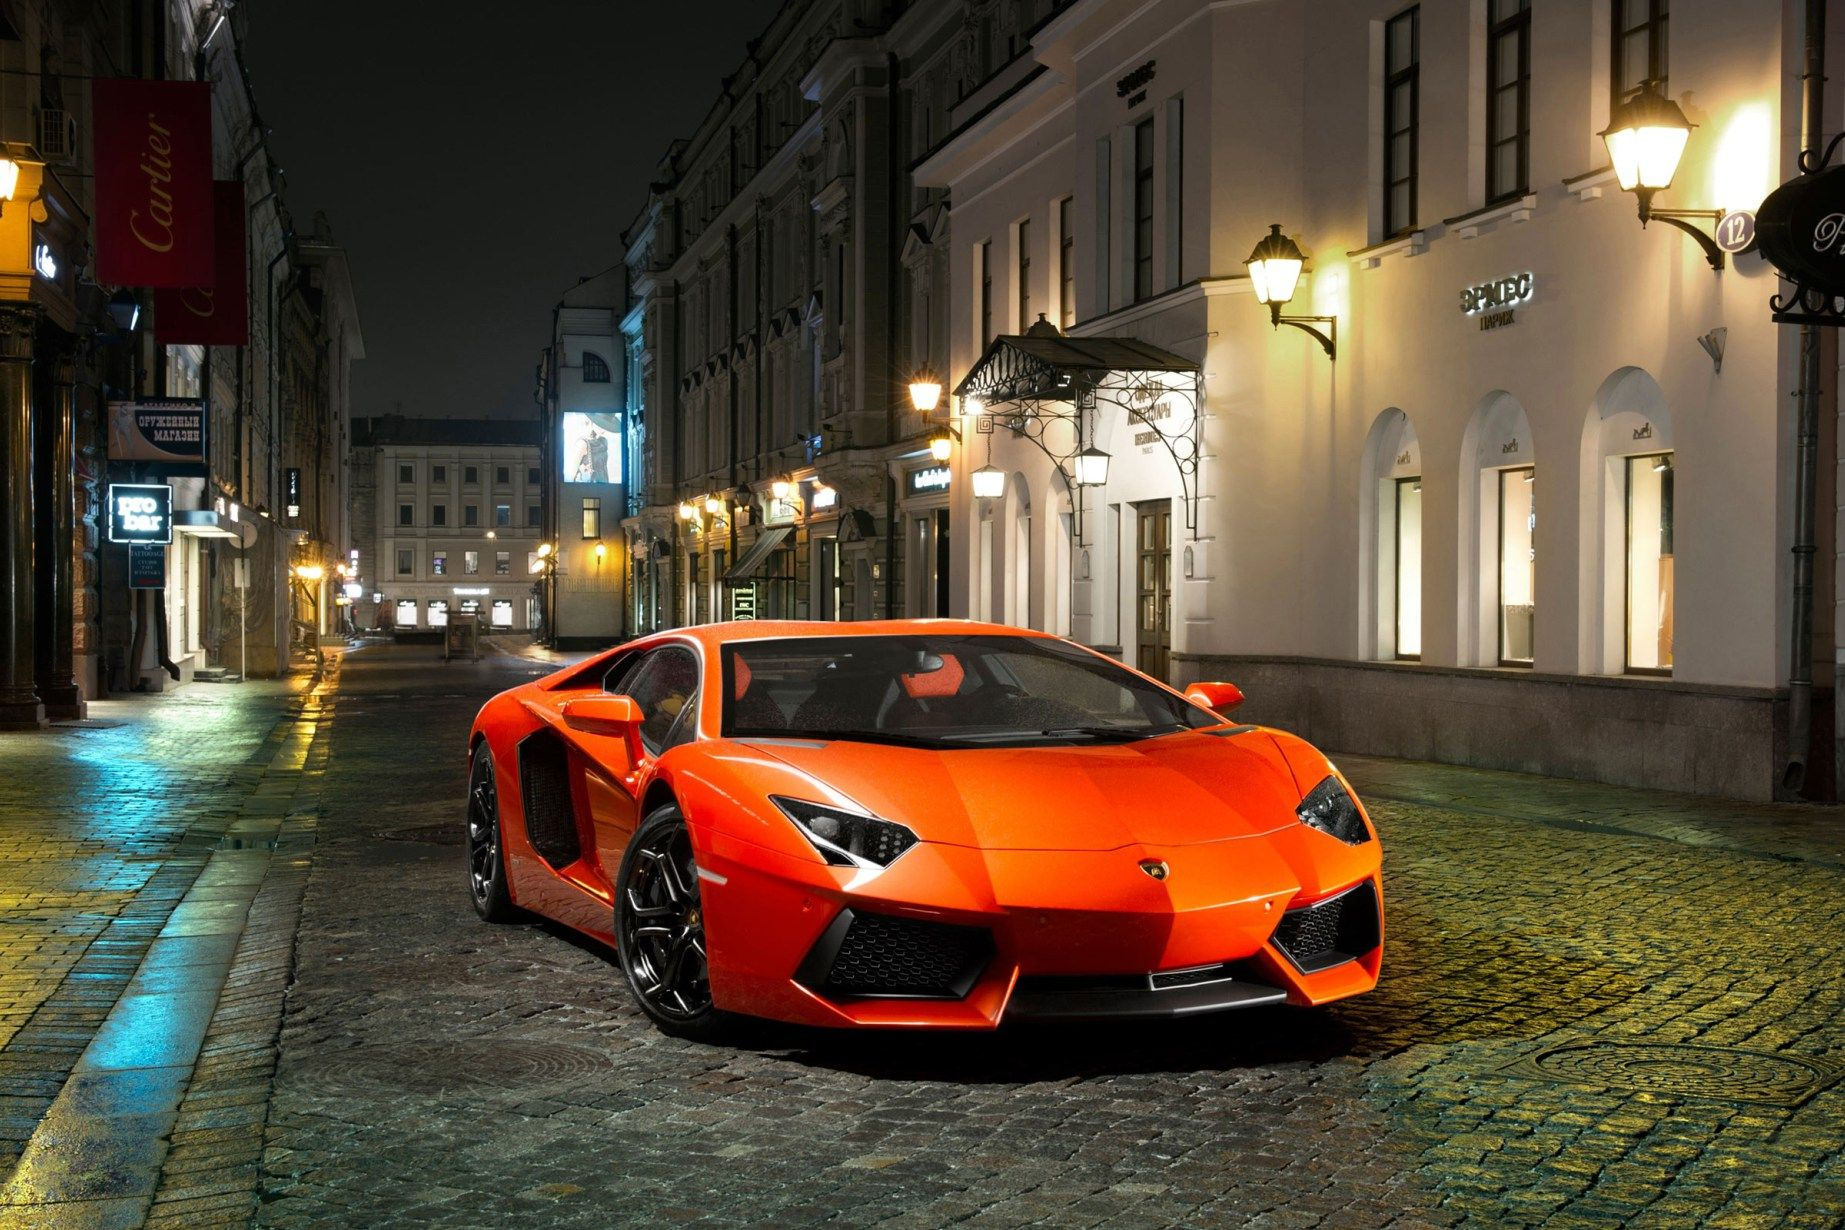 Download Lamborghini Aventador Lp700 Cars 4k Hd Wallpapers Images Photos Backgrounds For De Car Wallpapers Lamborghini Aventador Lamborghini Aventador Lp700